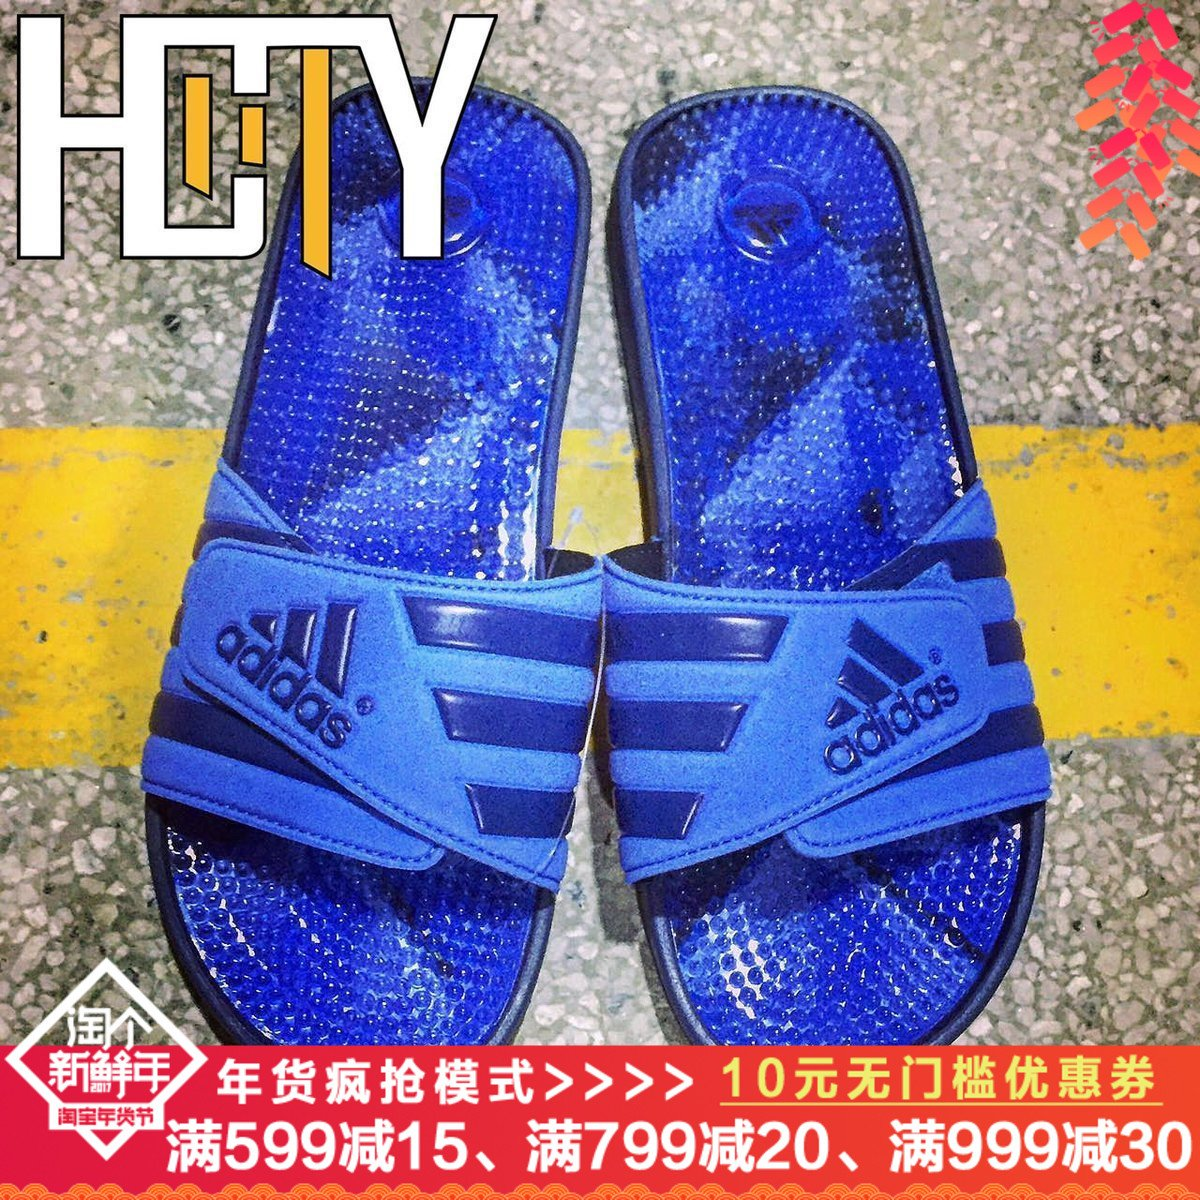 Product #539380593268